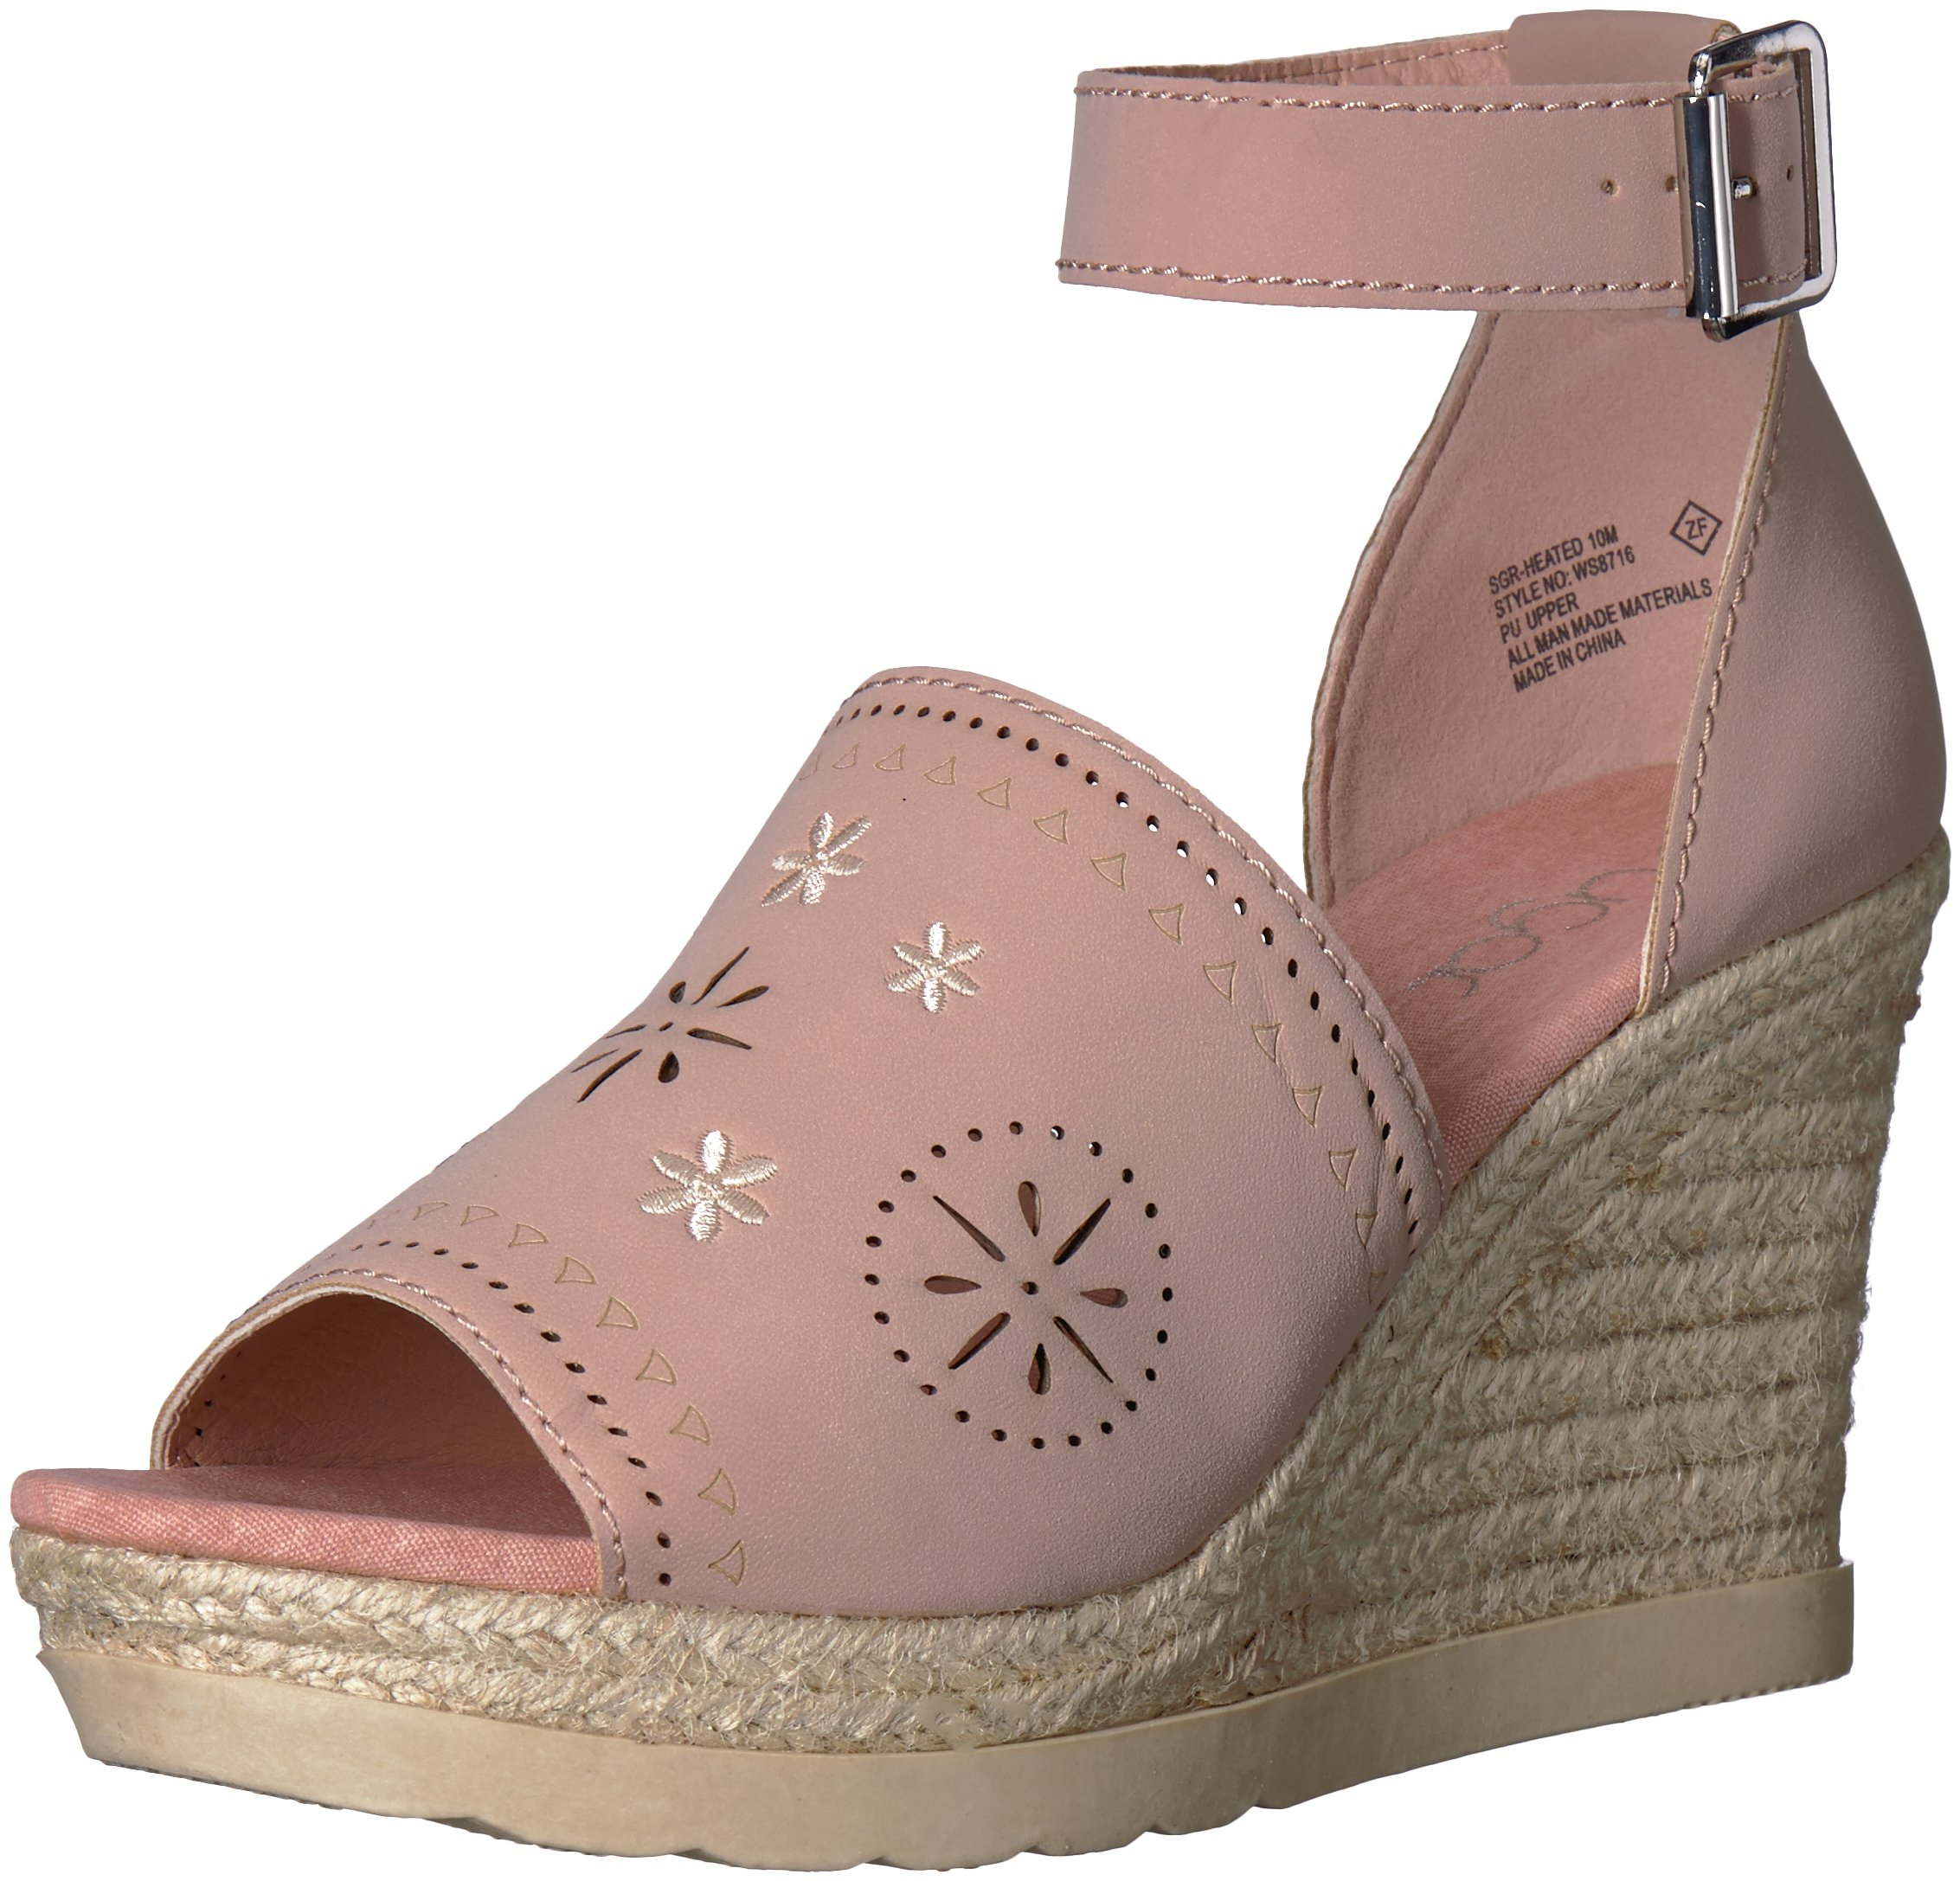 Sugar Women's SGR-Heated Espadrille Wedge Sandal, Blush Nubuck, 7.5 M US